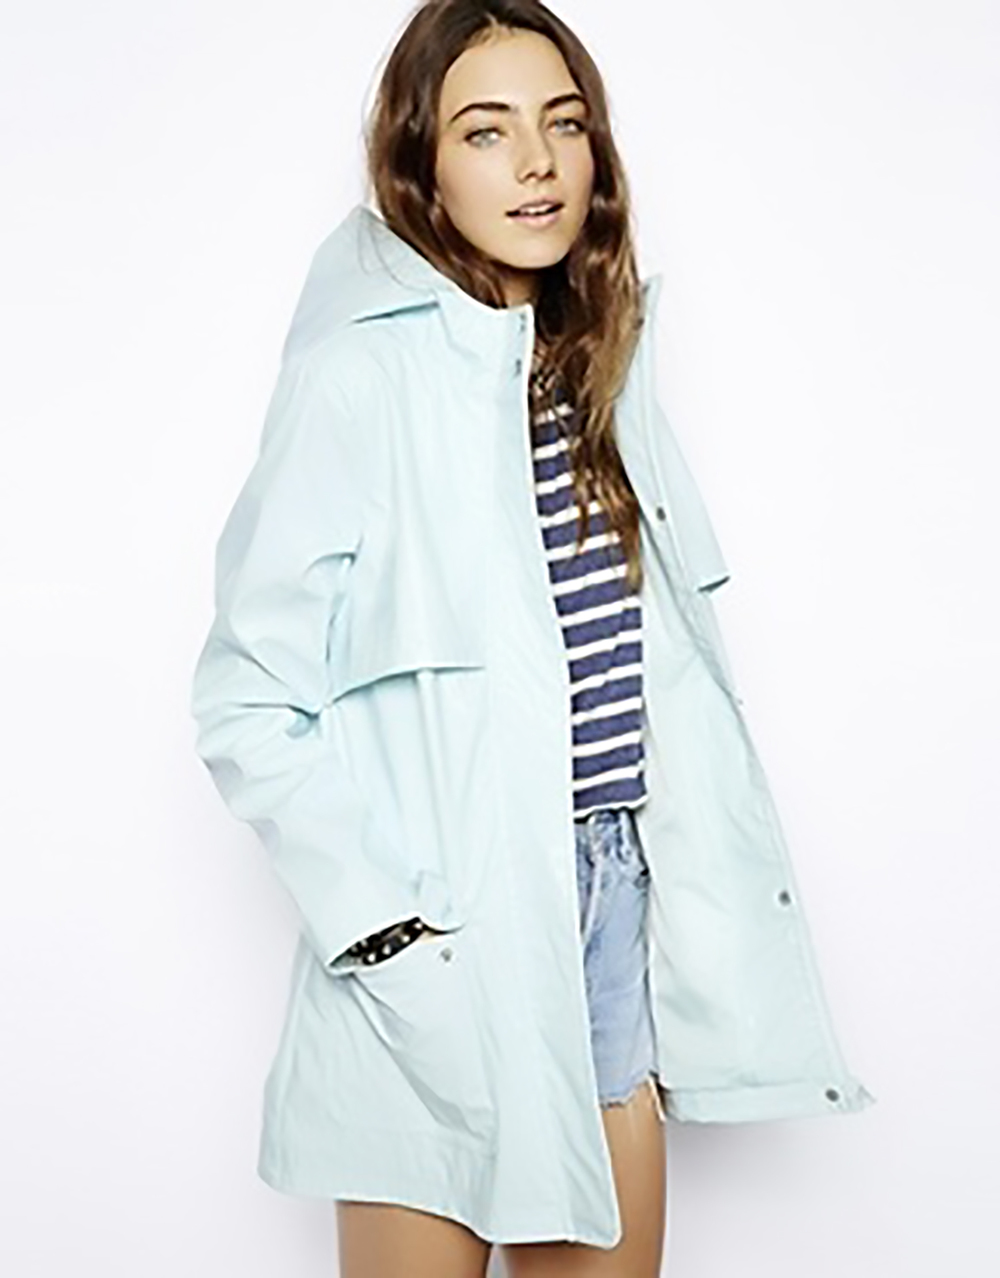 asos high shine rain mac rain gear 1500.jpg